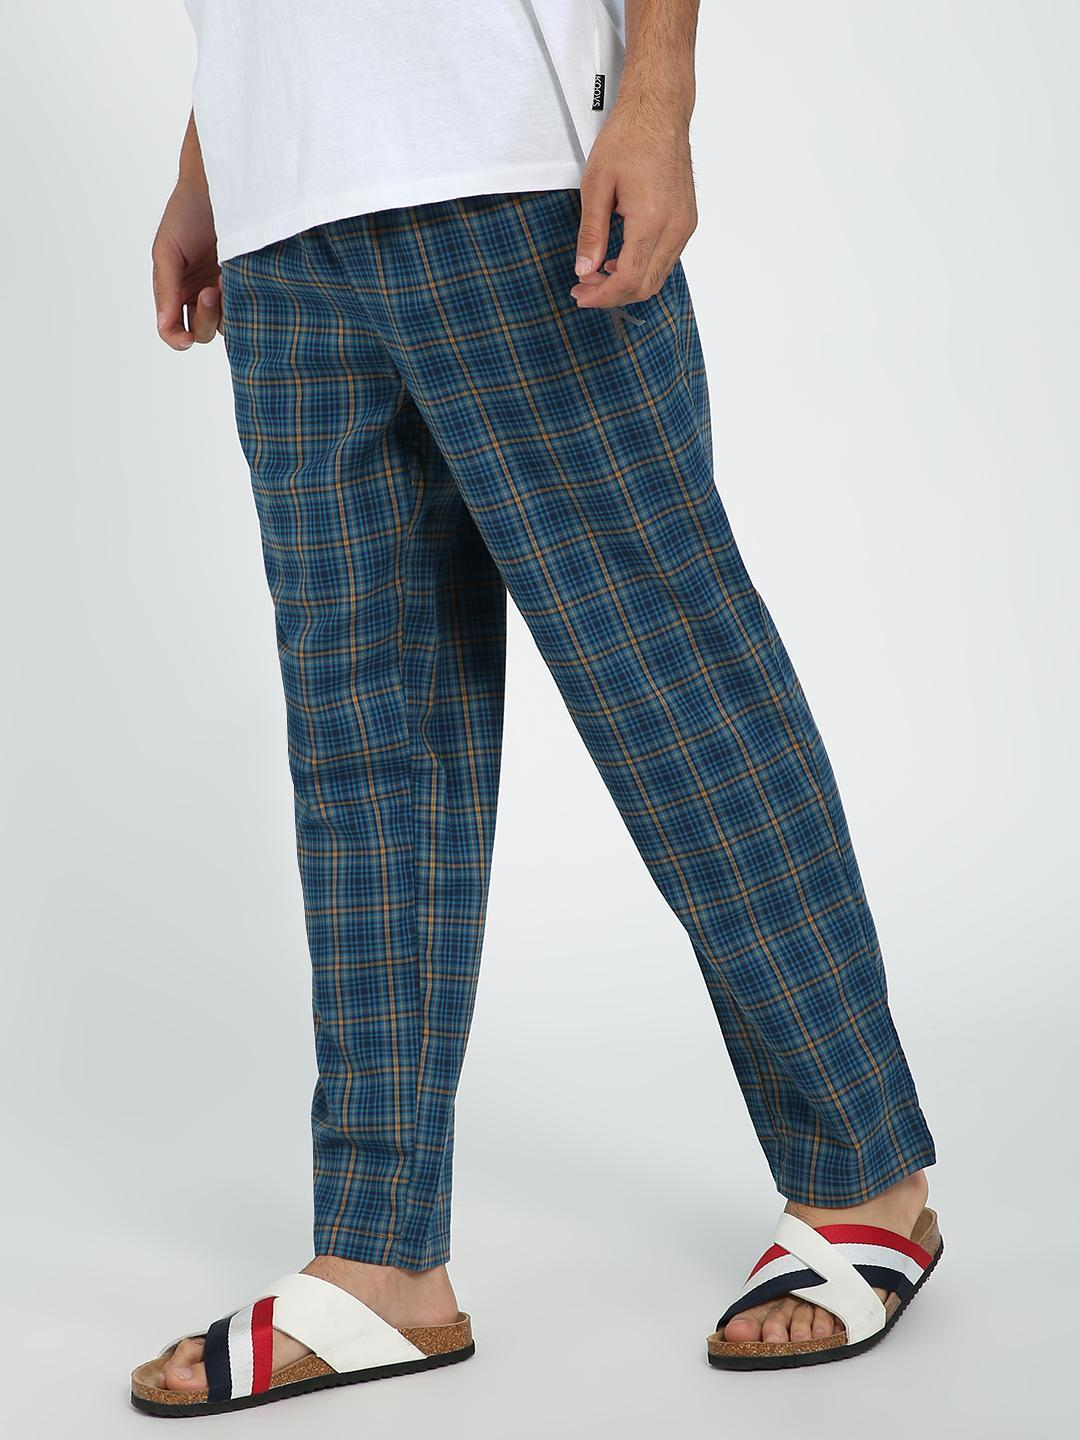 TRUE RUG Blue Multi Checks Jog Pants 1